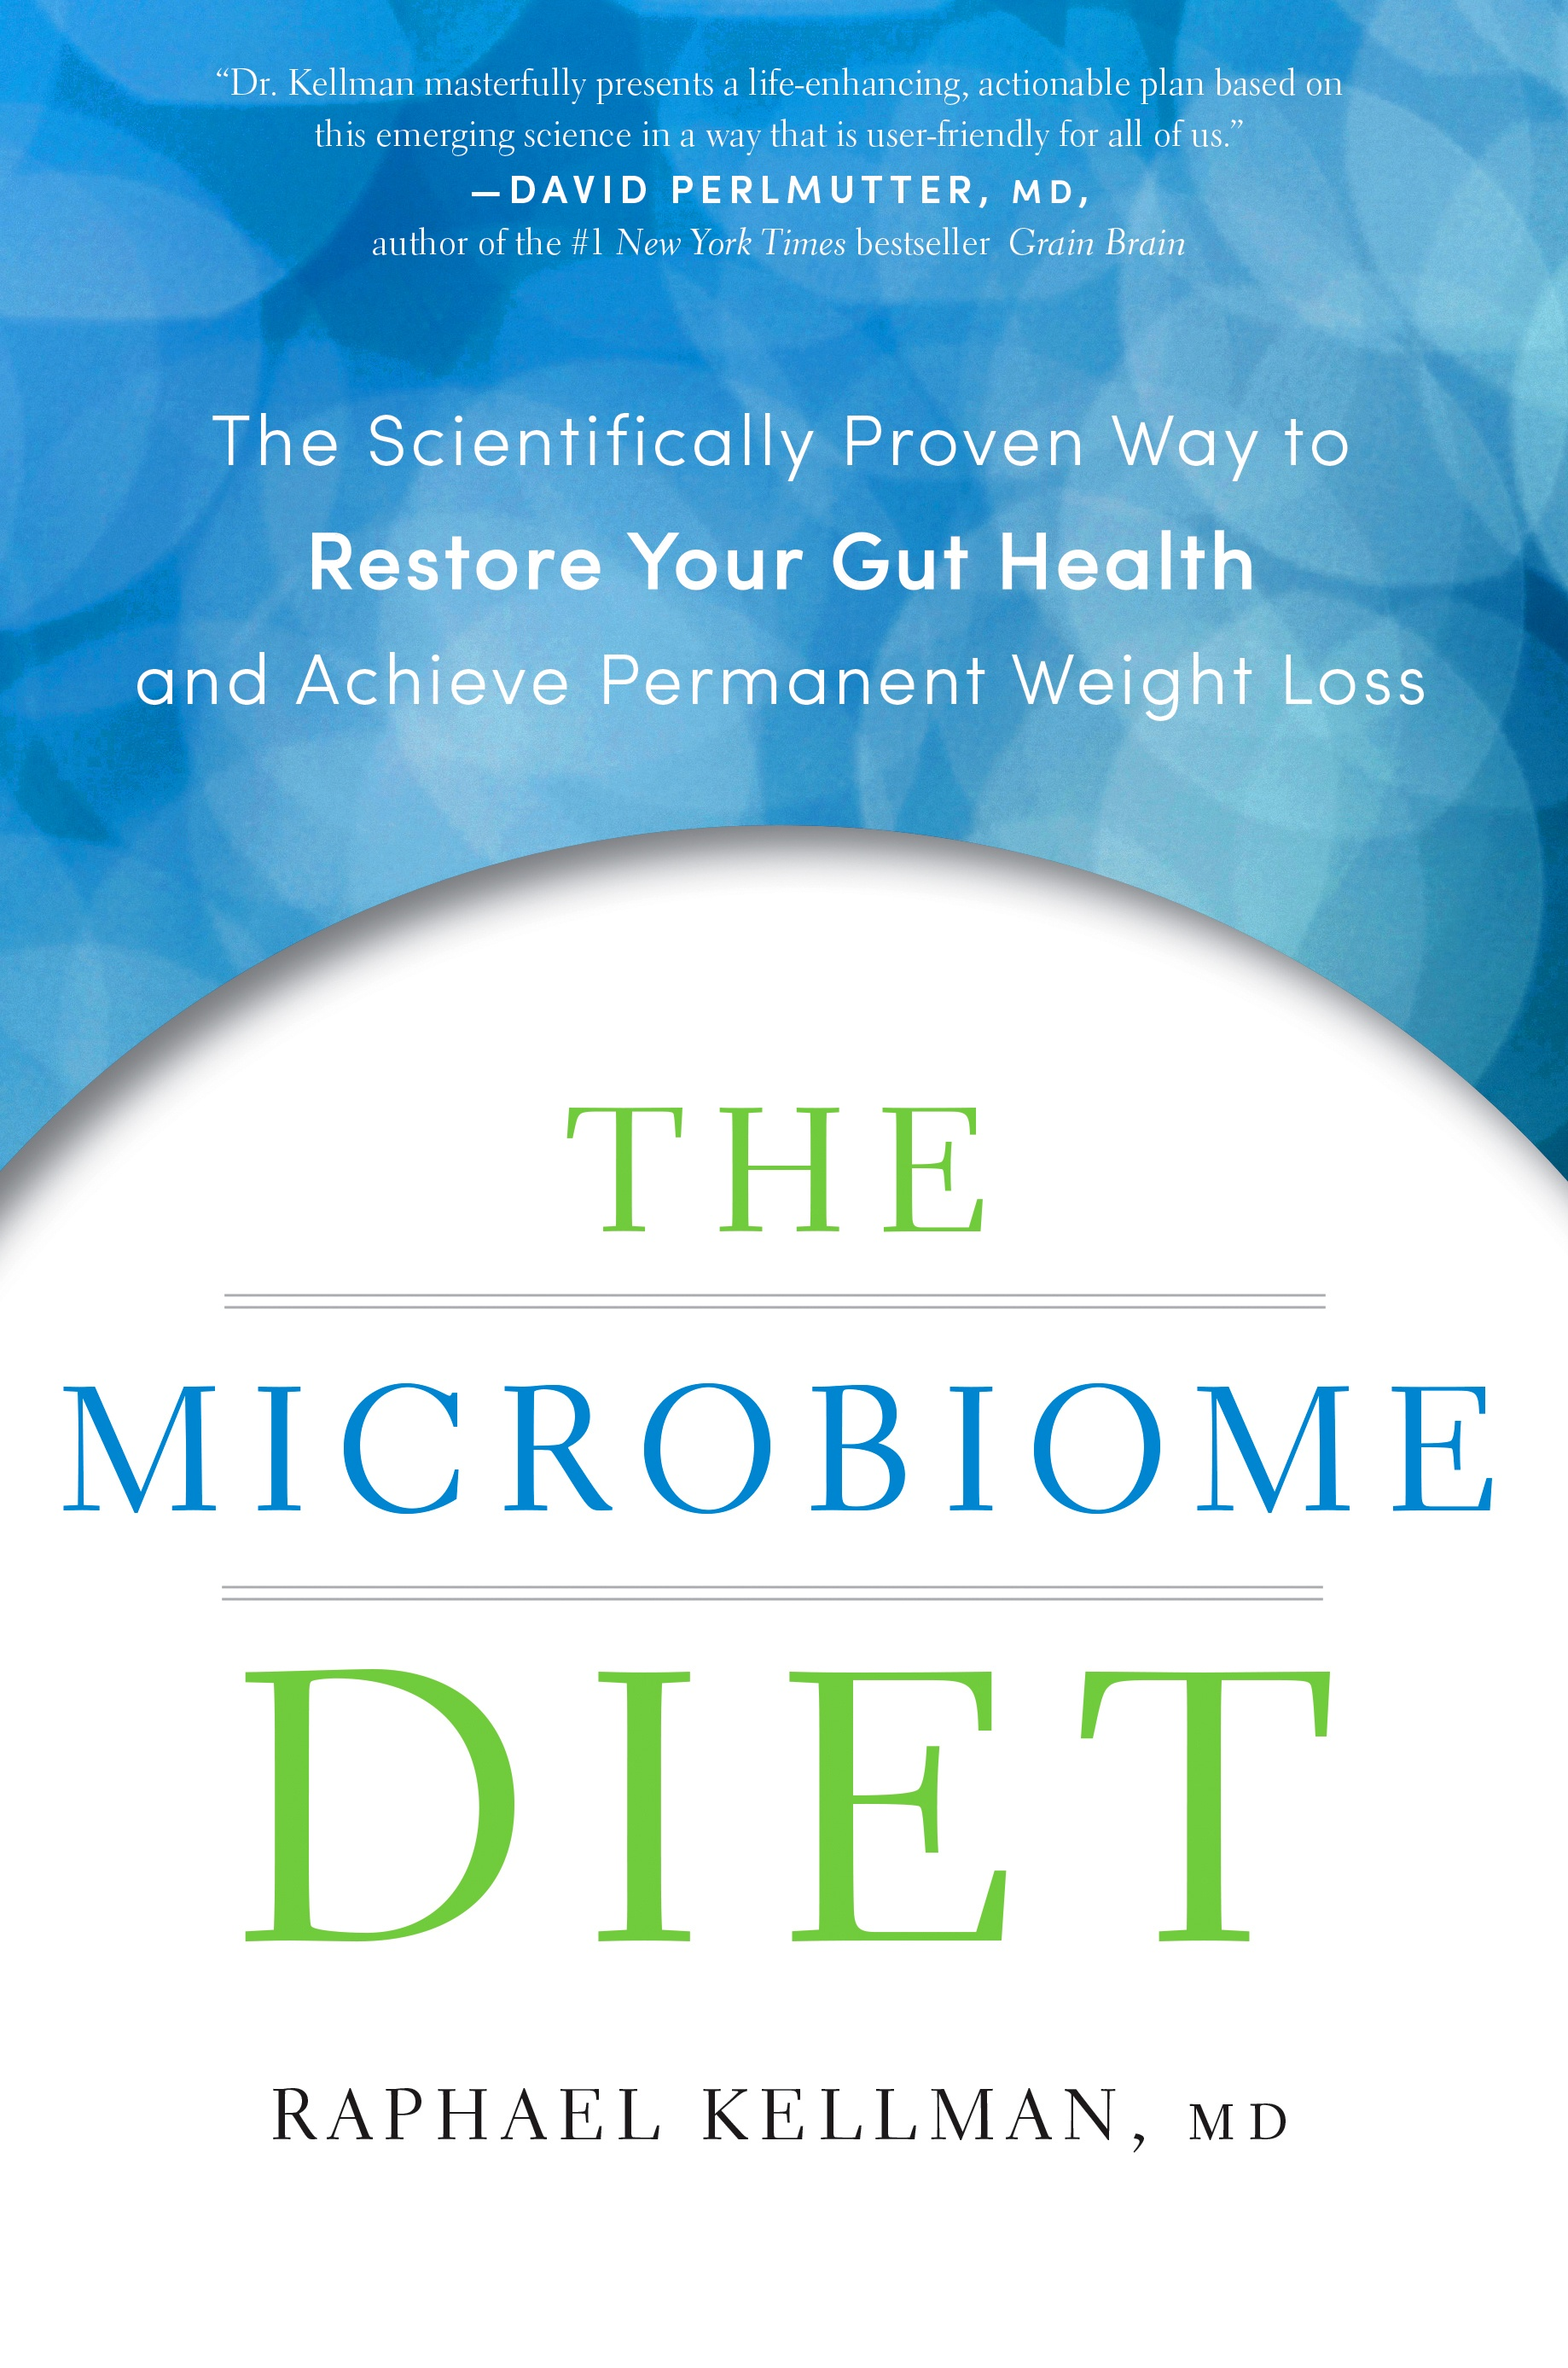 Get the full picture of your unique gut microbiome